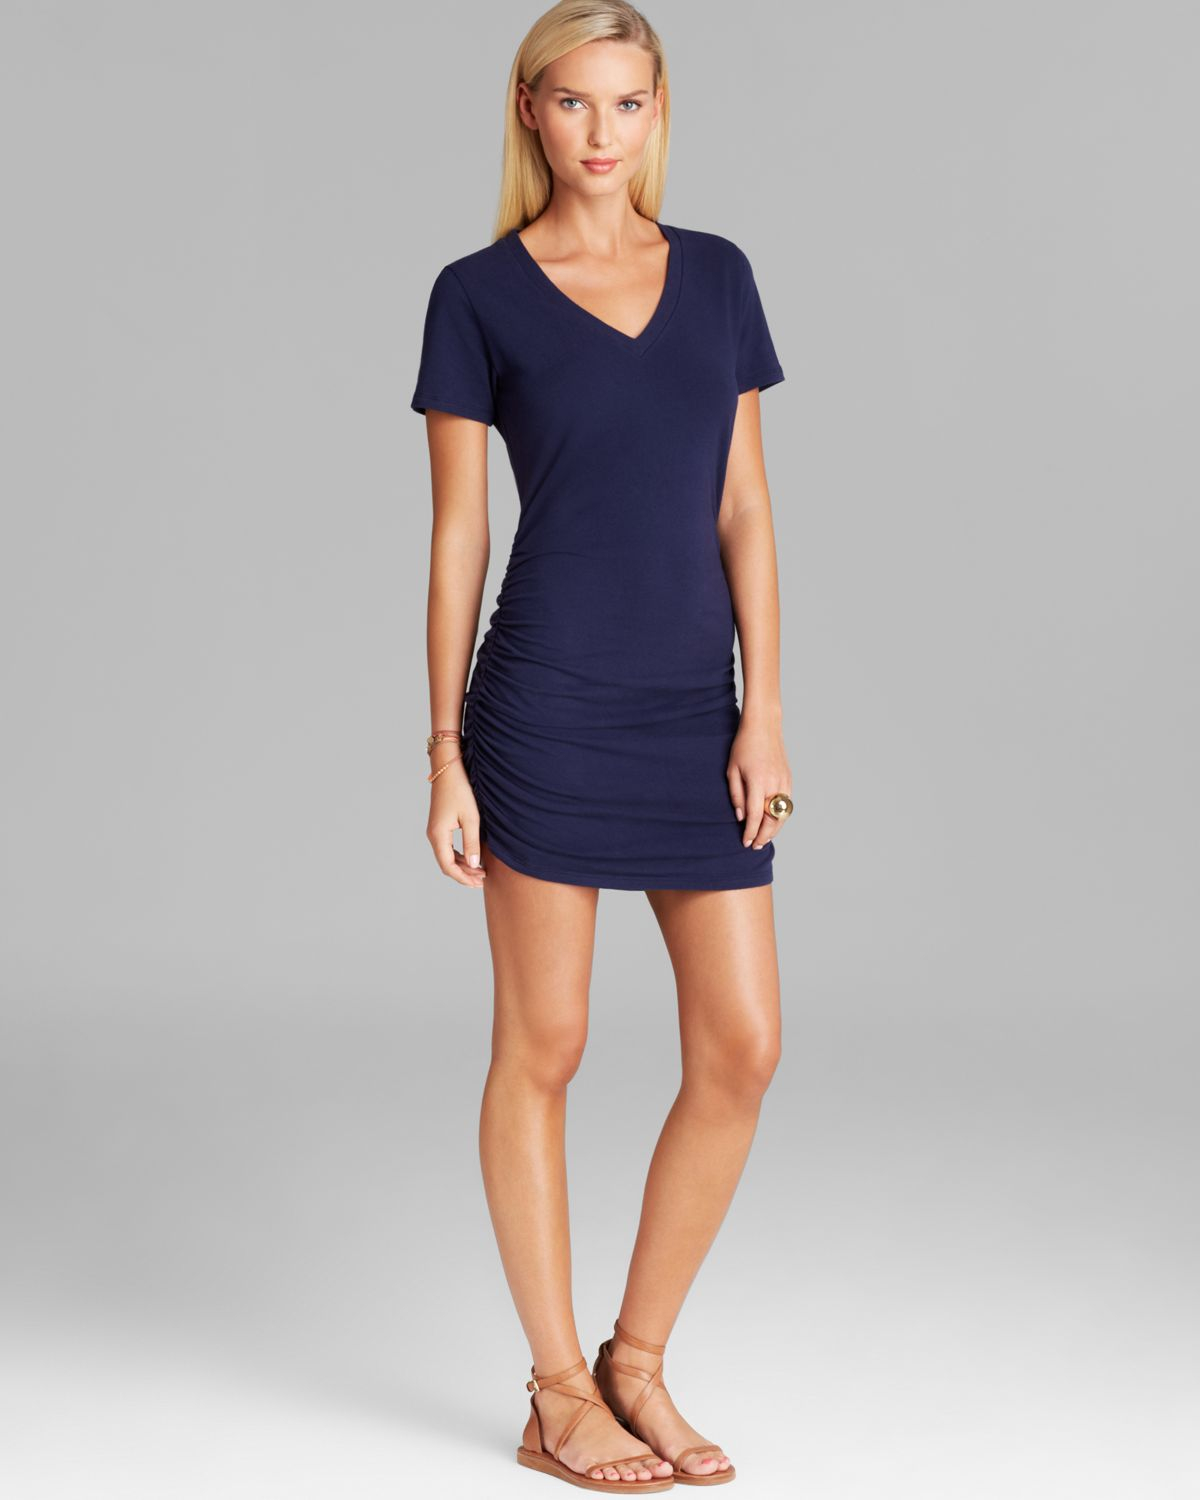 Lyst Tommy Bahama Solid Knit V Neck T Shirt Swim Cover Up Dress In